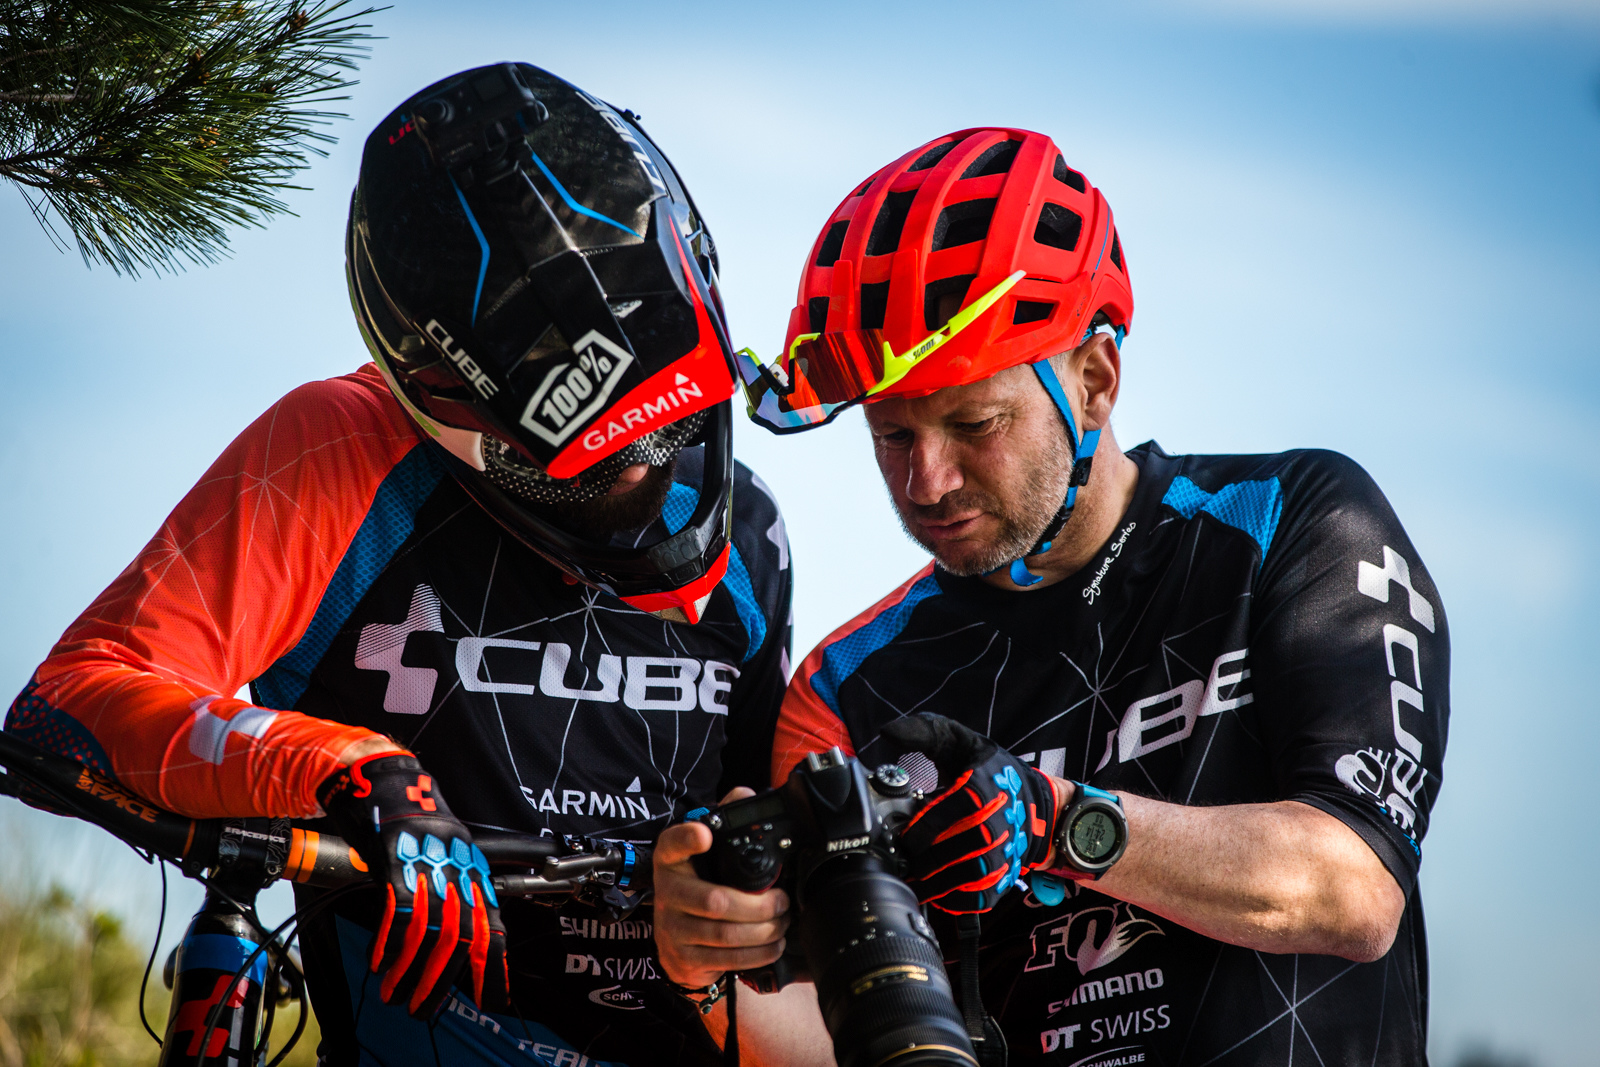 Cube Action Team camp 2016. San Lorenzo Italy. Photo by Matt Wragg.